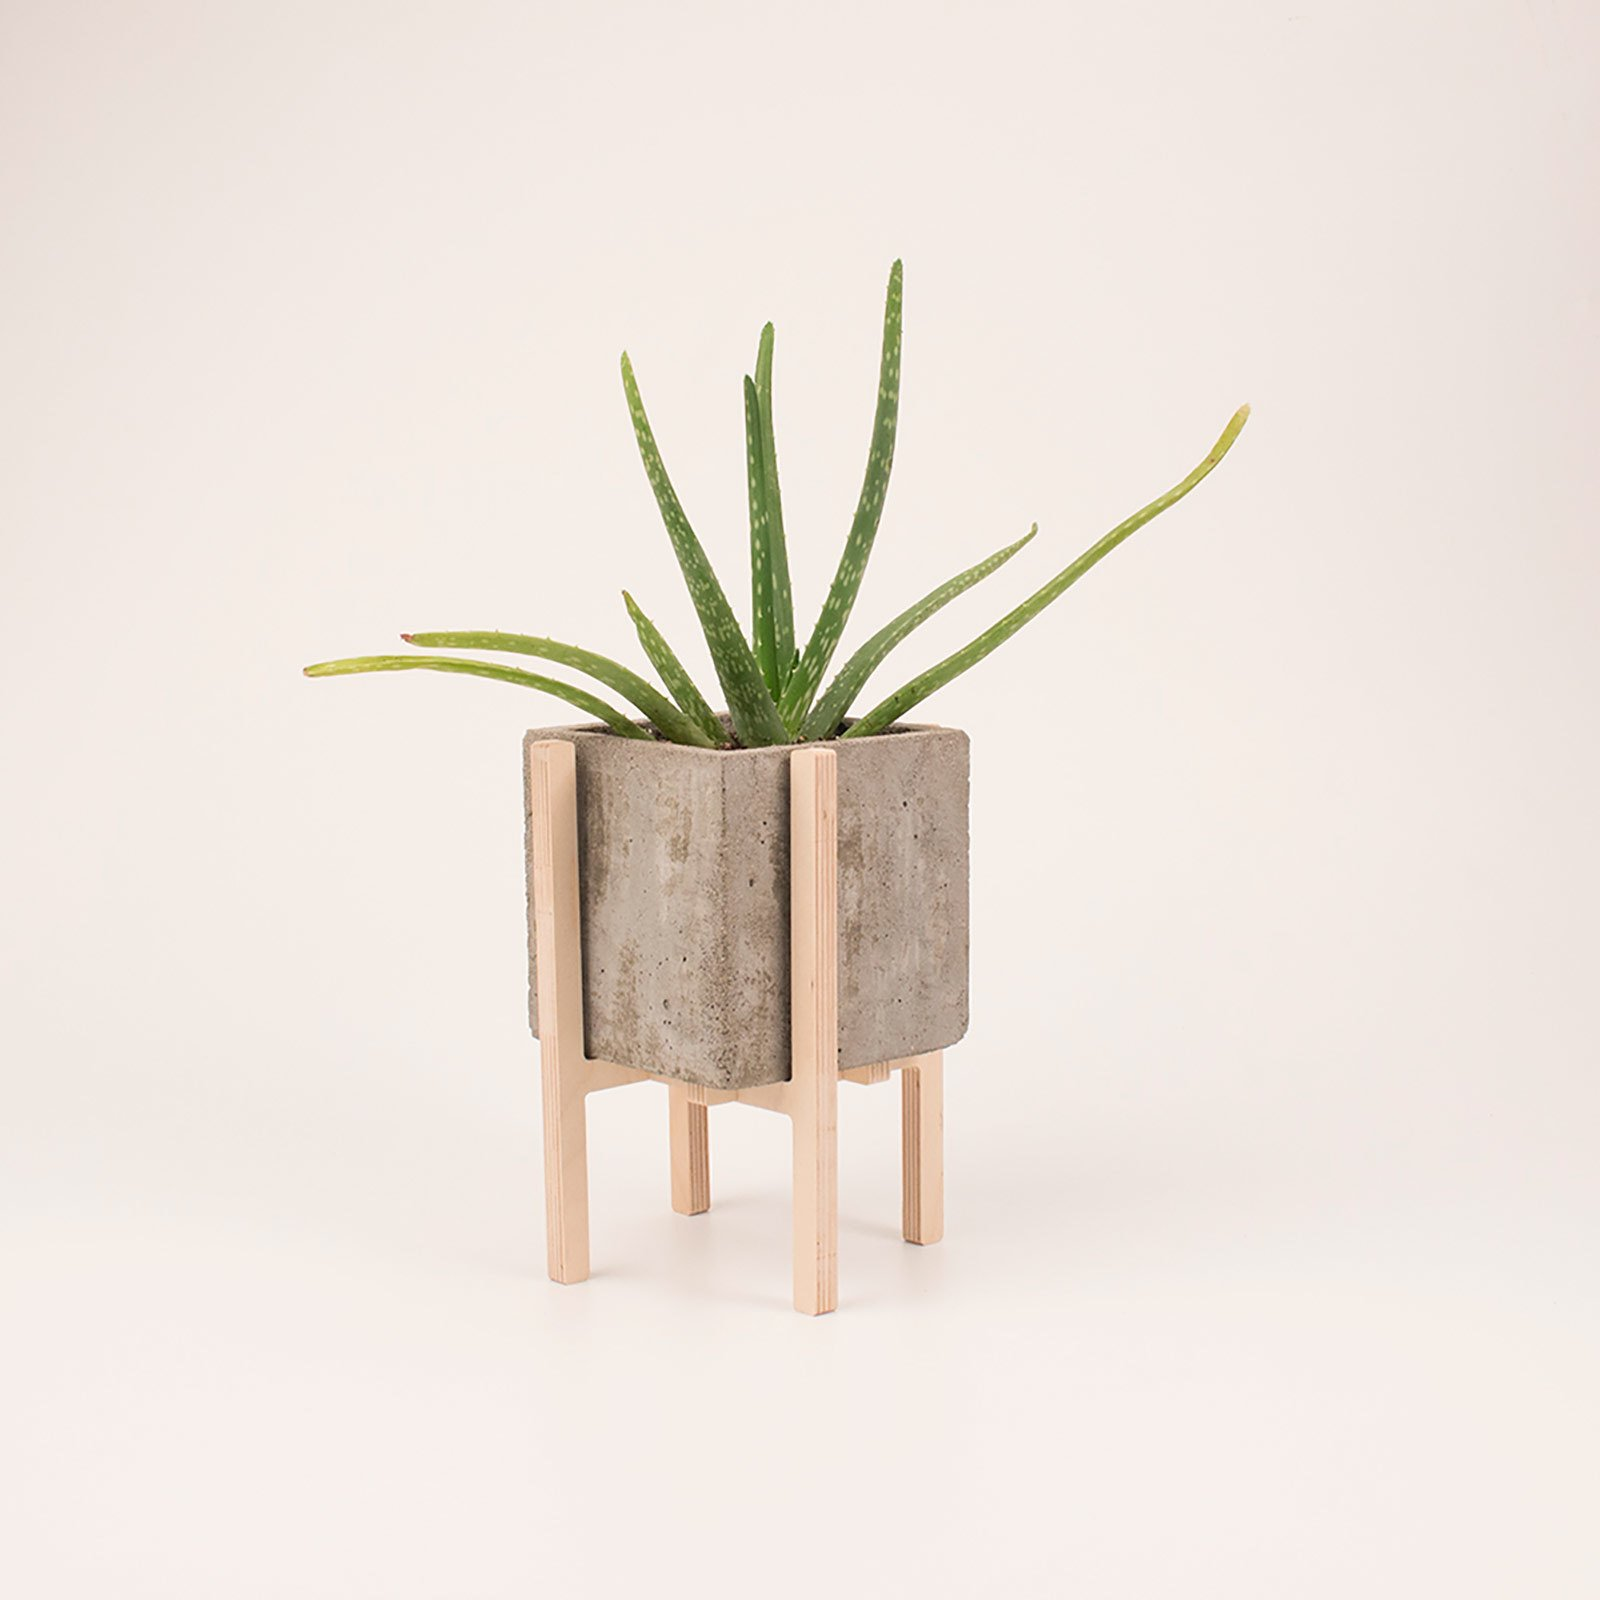 Concrescence concrete planters by Vakodesign   Brutal Beauty by Gessato